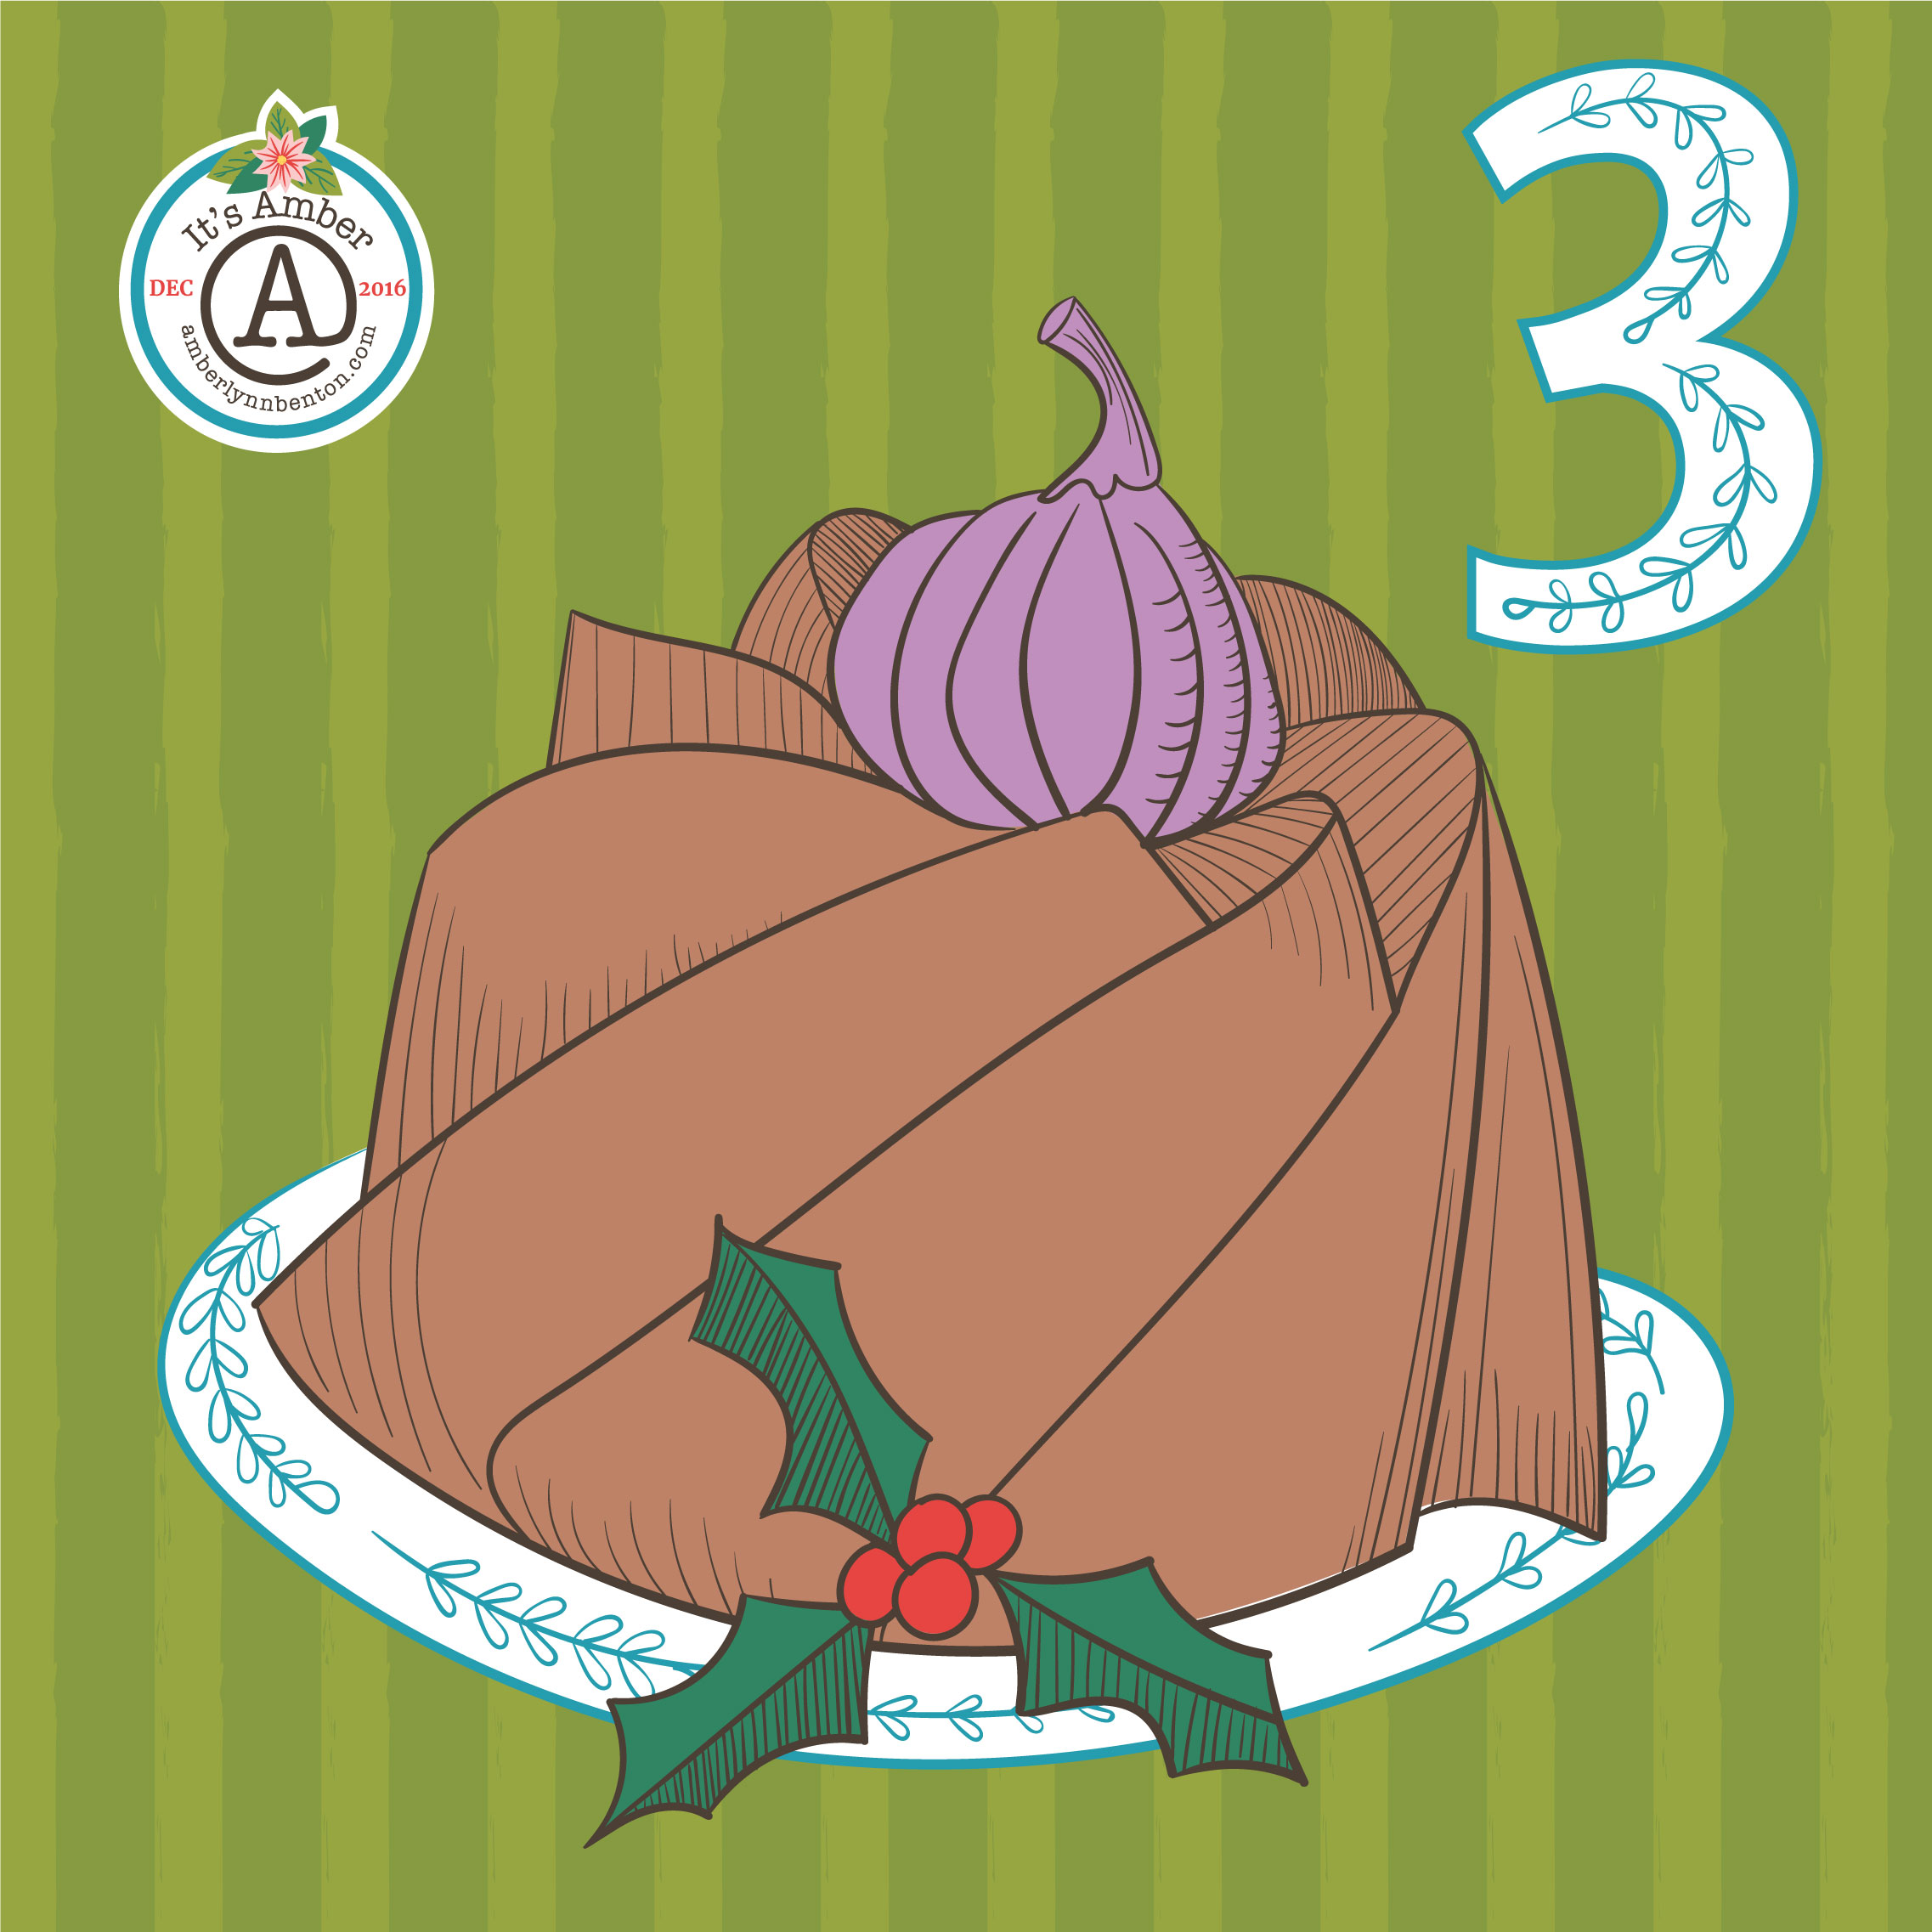 A Figgy Pudding by Amber Lynn Benton for #ItsAdvent 2016